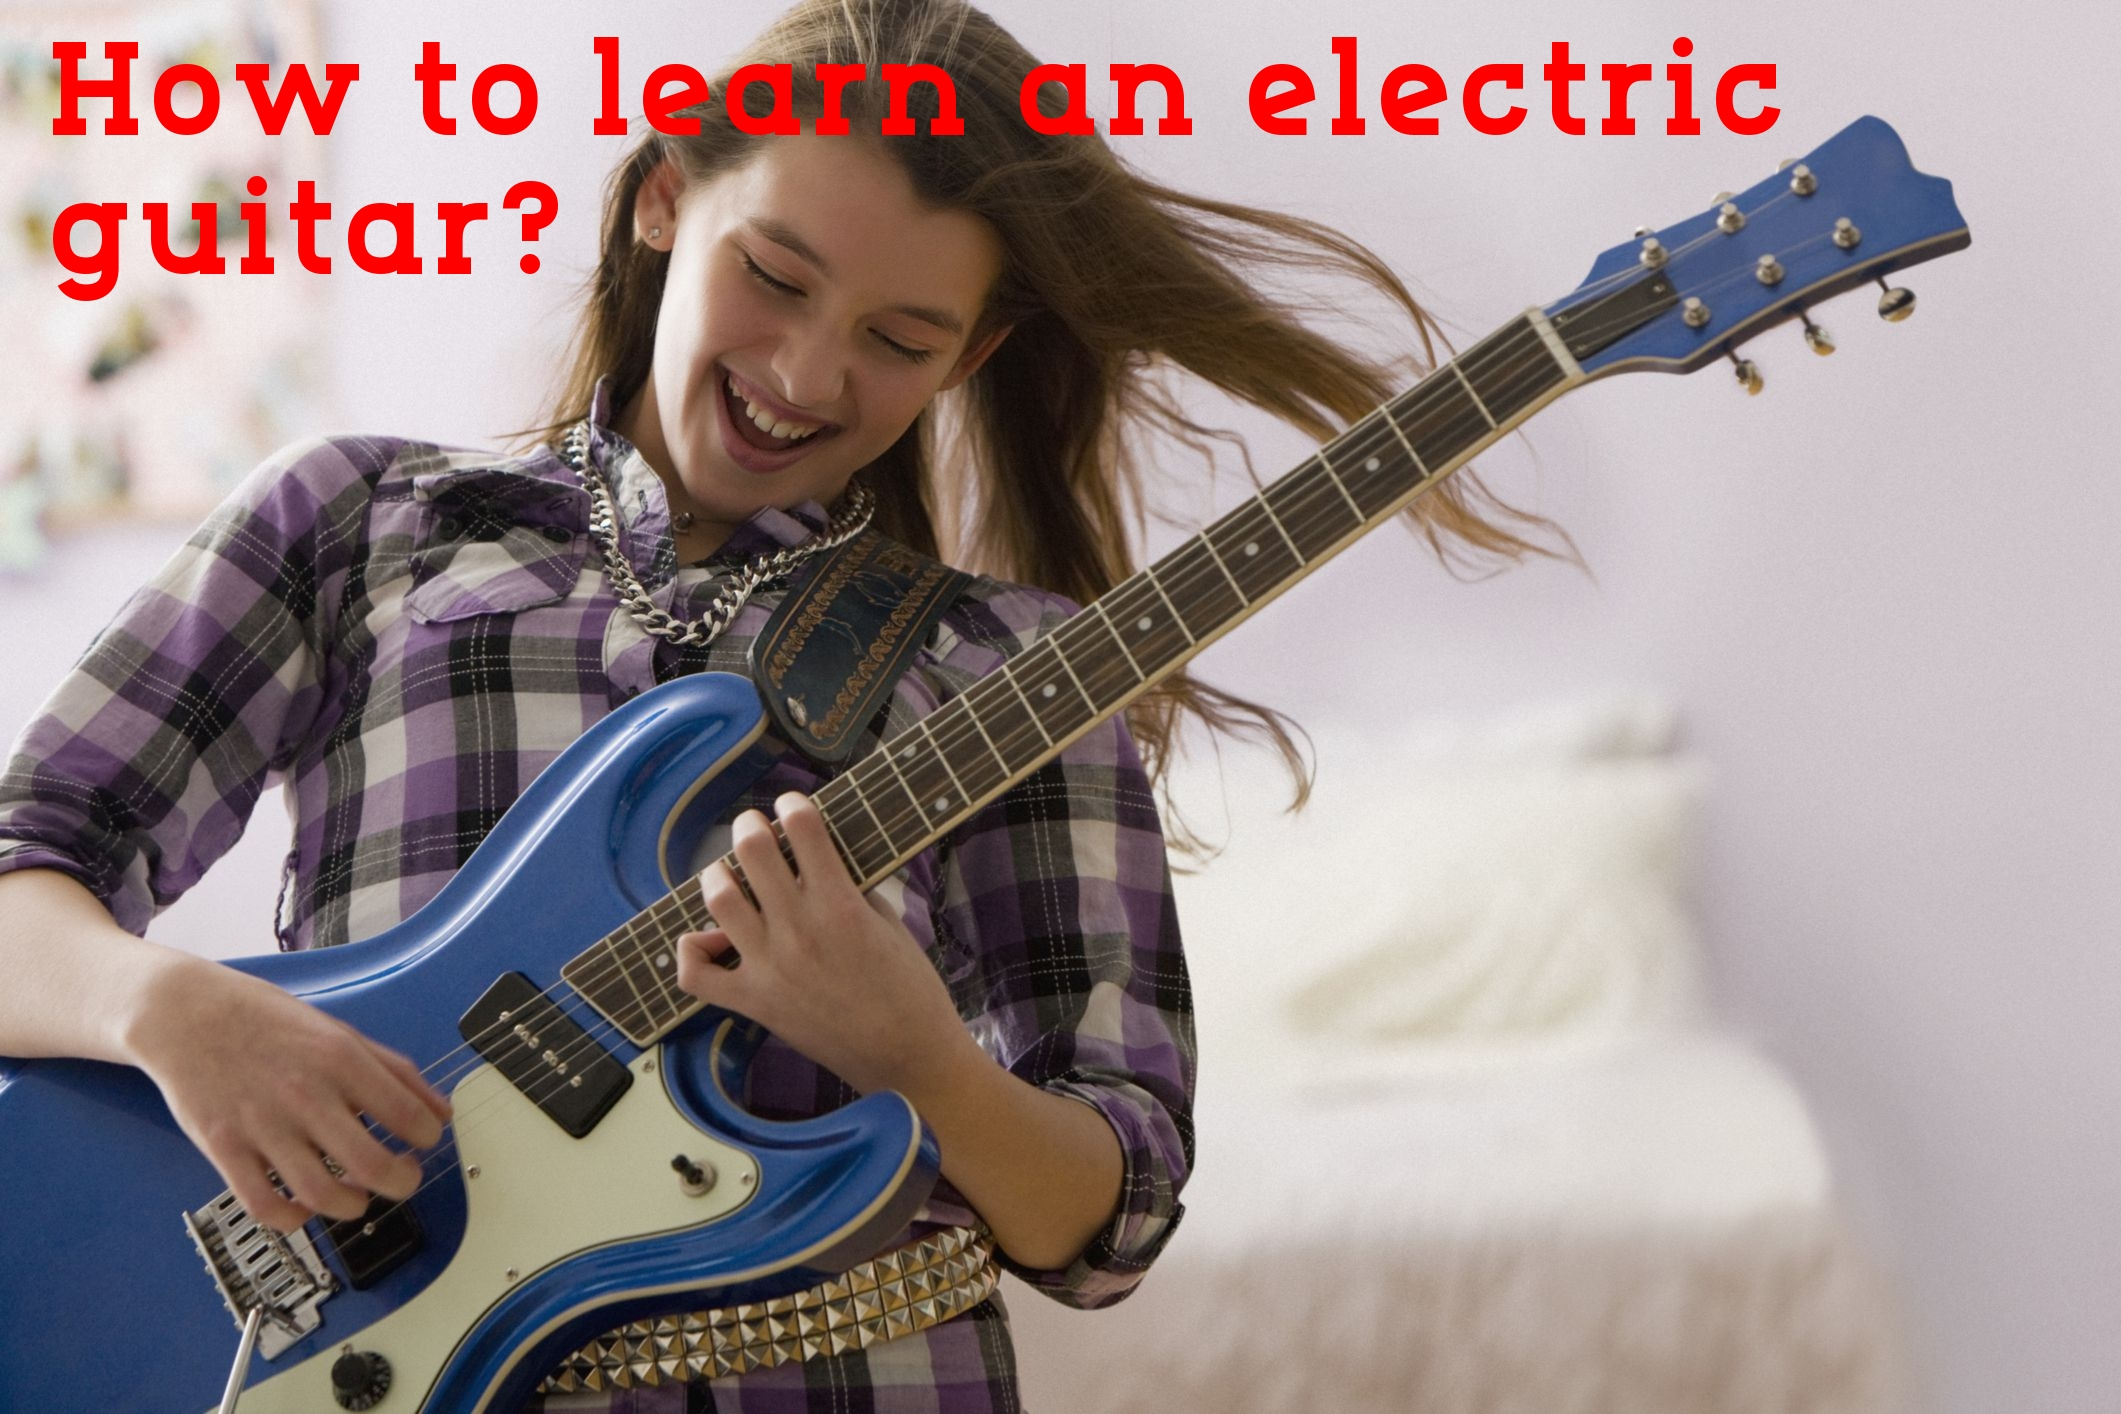 How to learn an electric guitar?